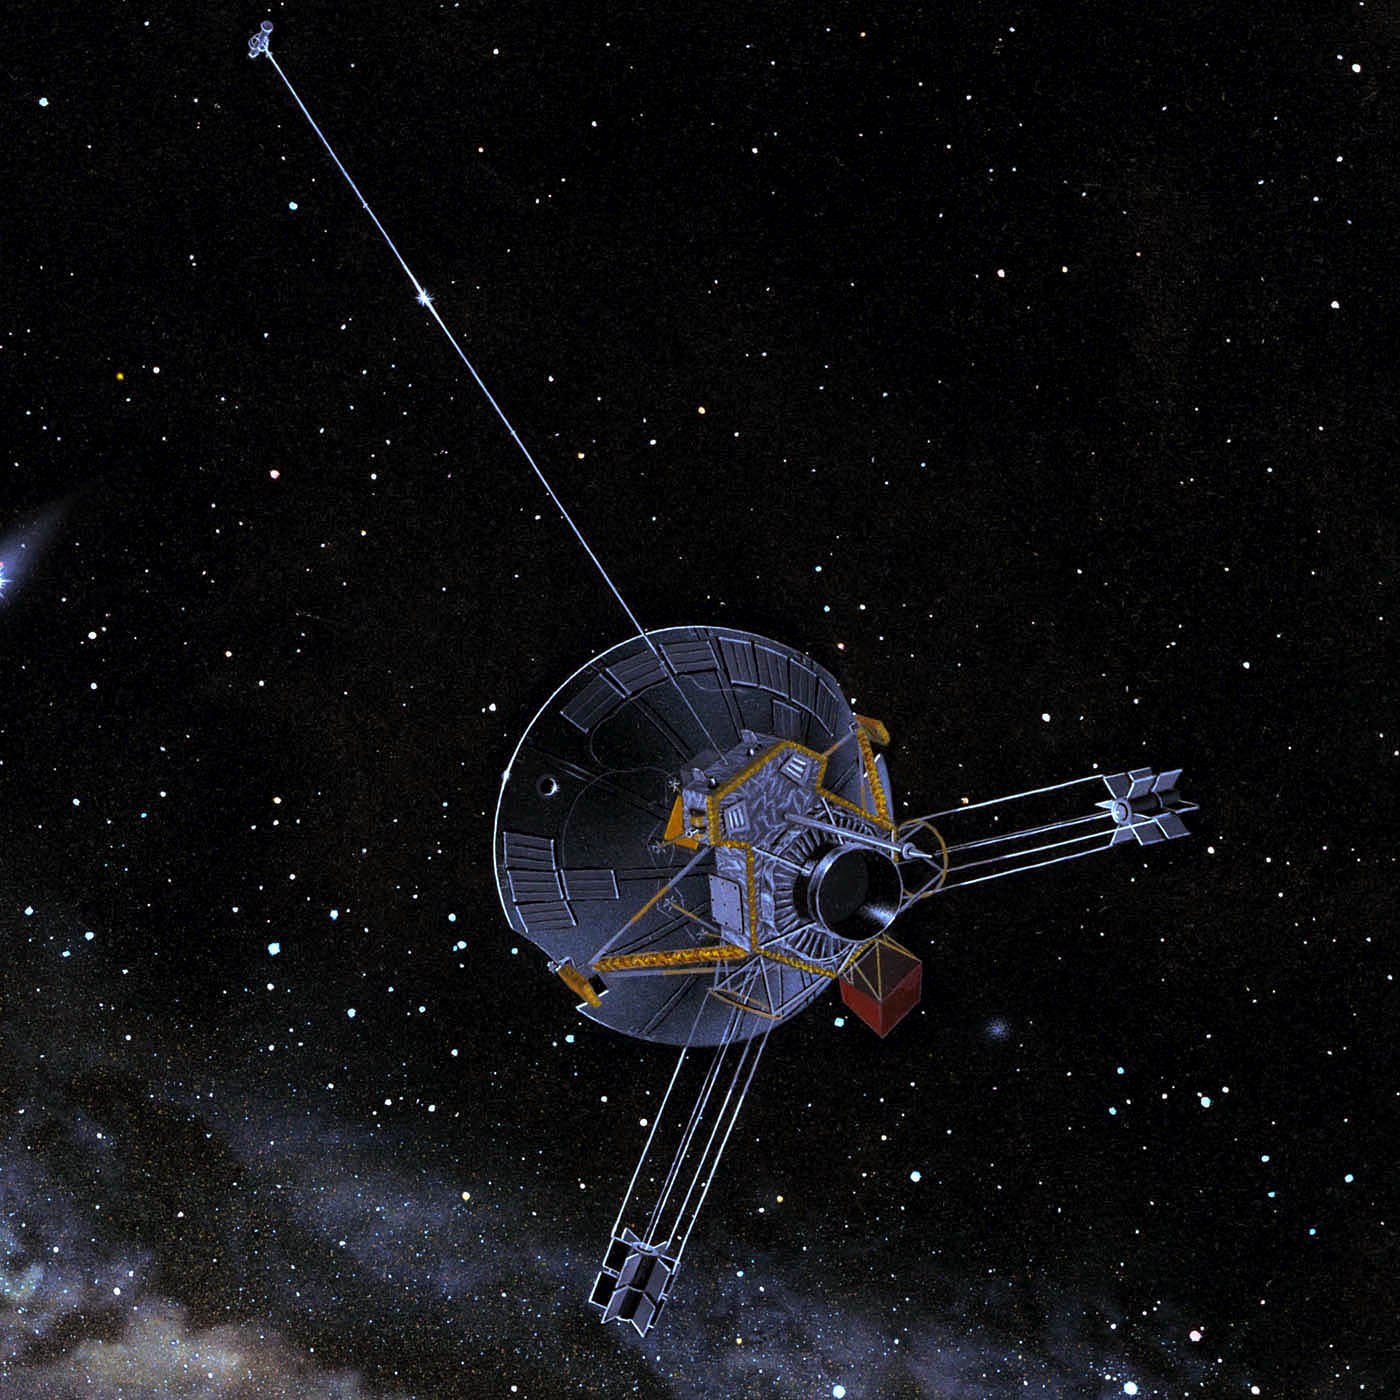 File:Pioneer 10-11 spacecraft.jpg - Simple English ...